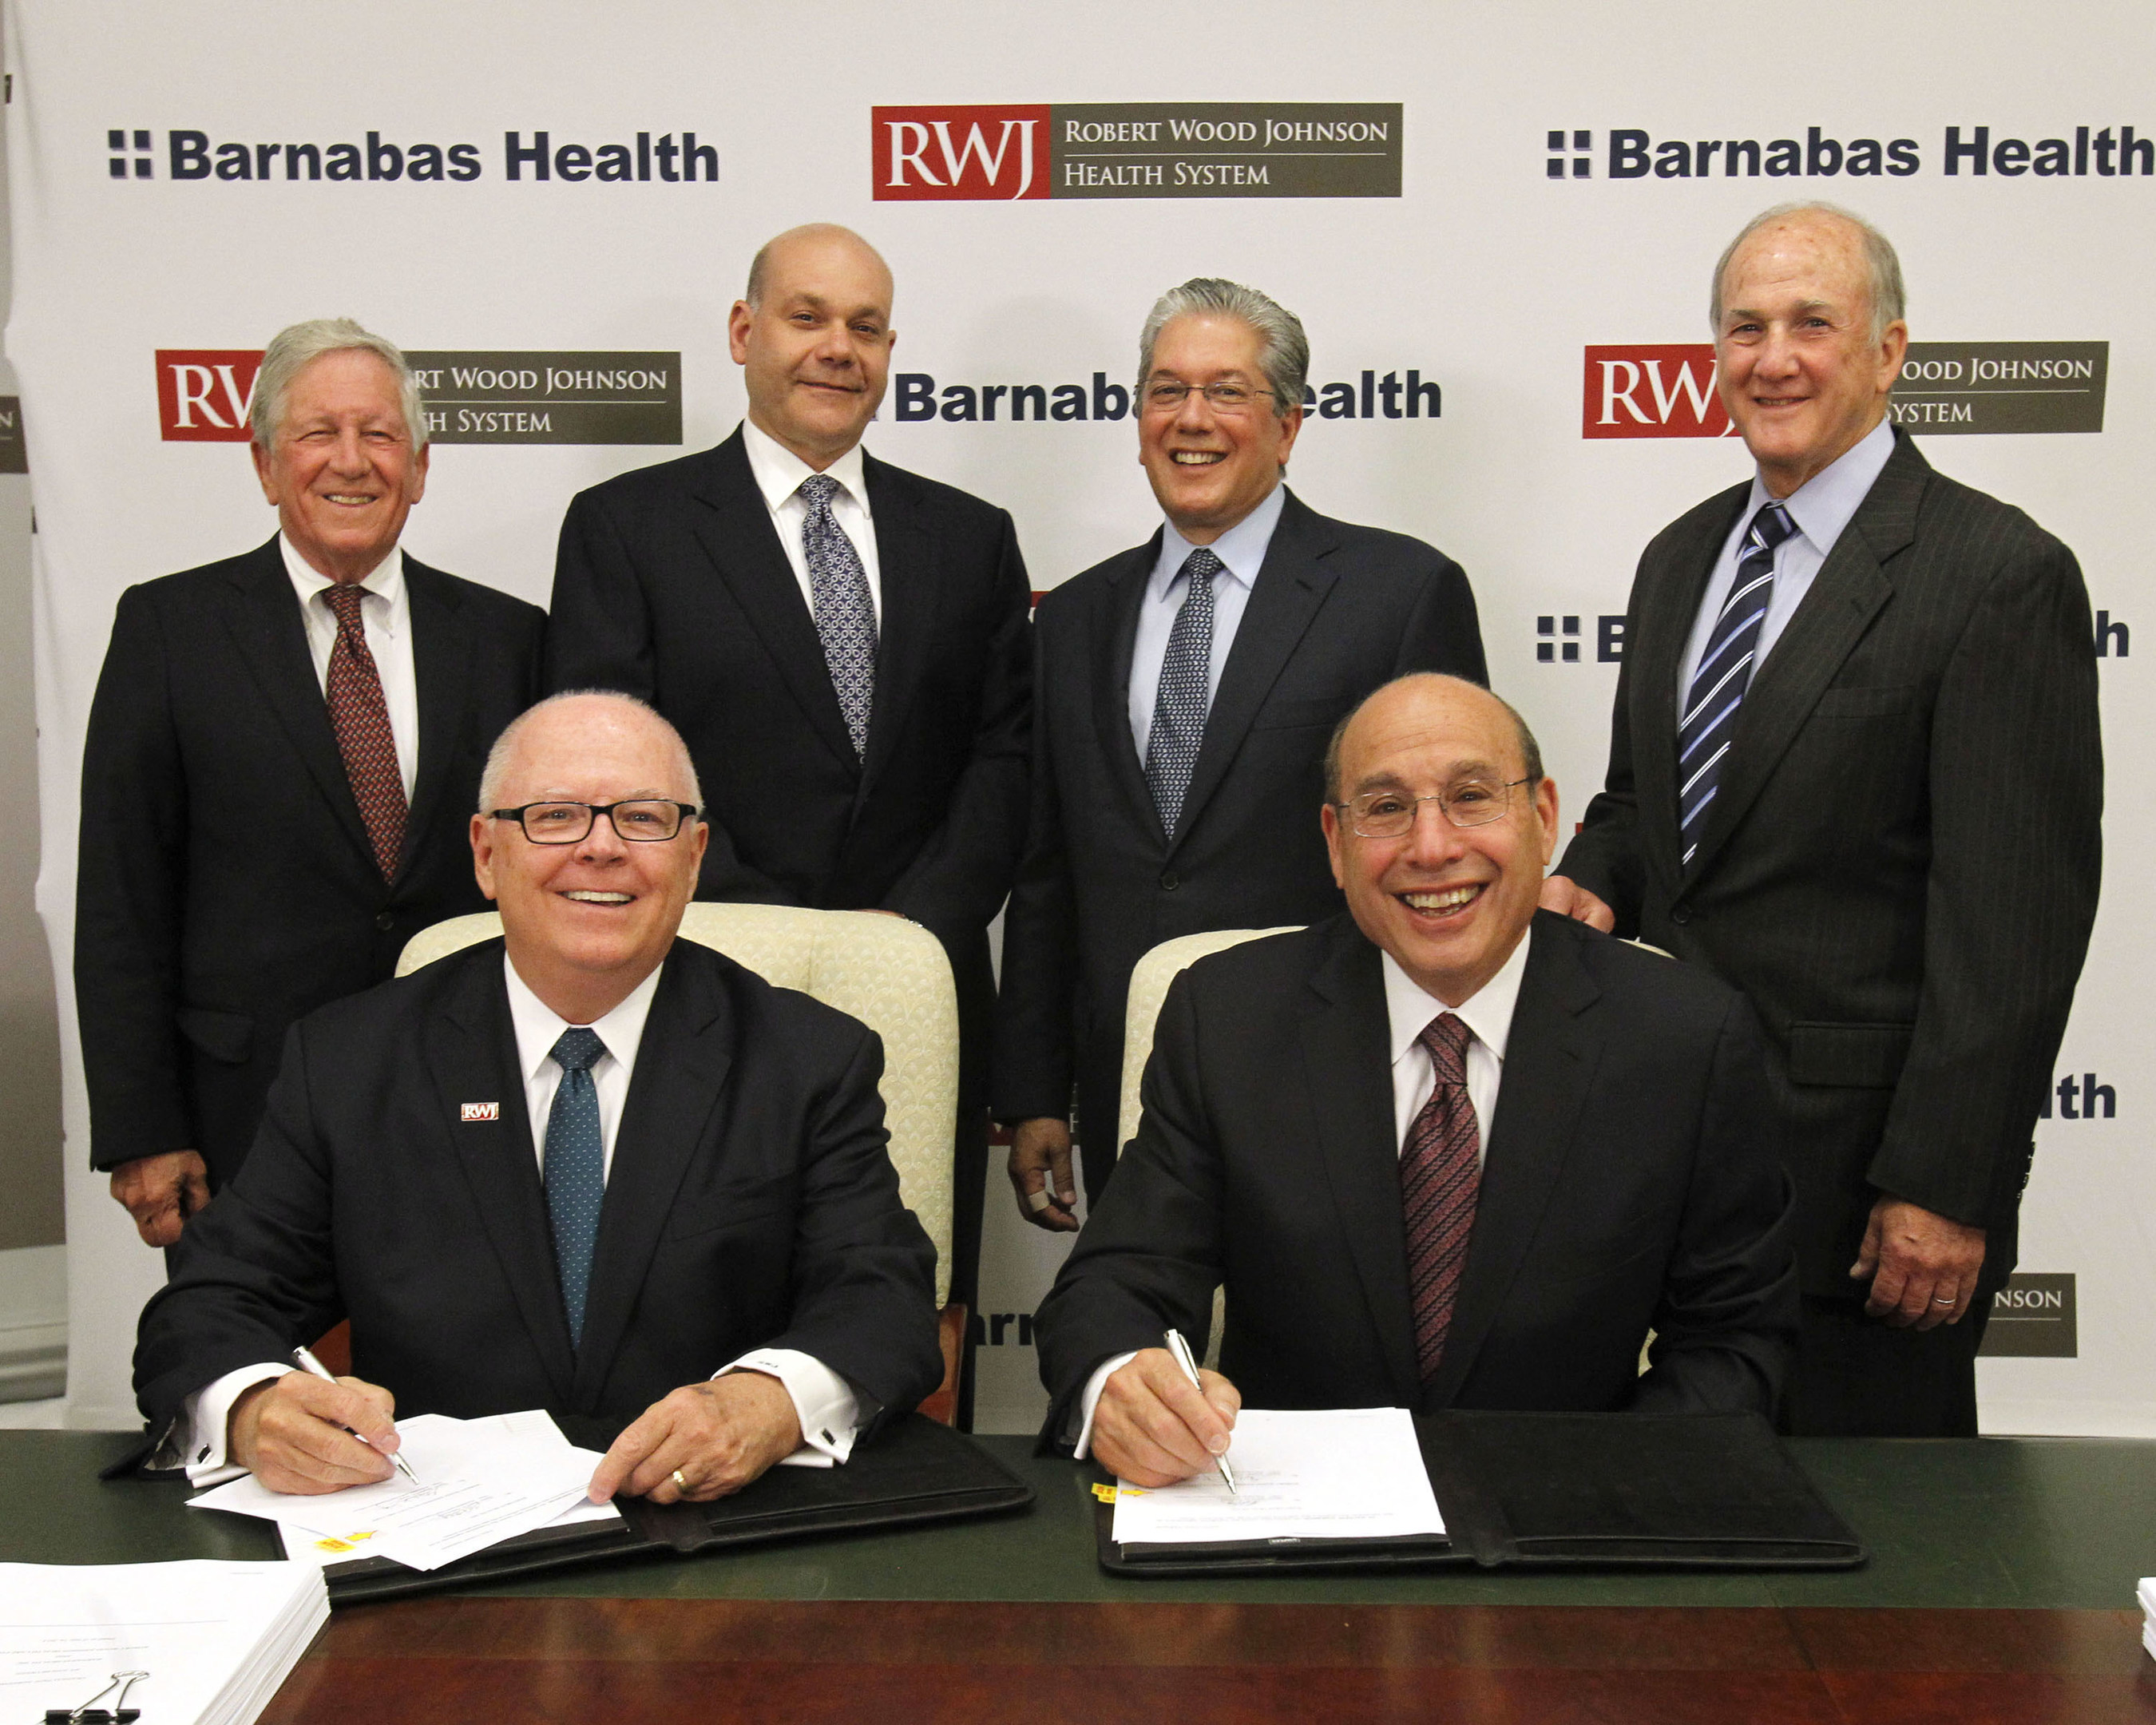 (seated left to right) Stephen K. Jones, President and Chief Executive Officer of Robert Wood Johnson University Hospital and Robert Wood Johnson Health System, and Barry H. Ostrowsky, President and Chief Executive Officer of Barnabas Health, sign the definitive merger agreement. Present for the signing are (left to right) John Hoffman, Esq., Chair of Robert Wood Johnson Health Care Corp. Board; Jack Morris, Chair of the Robert Wood Johnson University Hospital Board; Marc E. Berson, Chair, Barnabas...